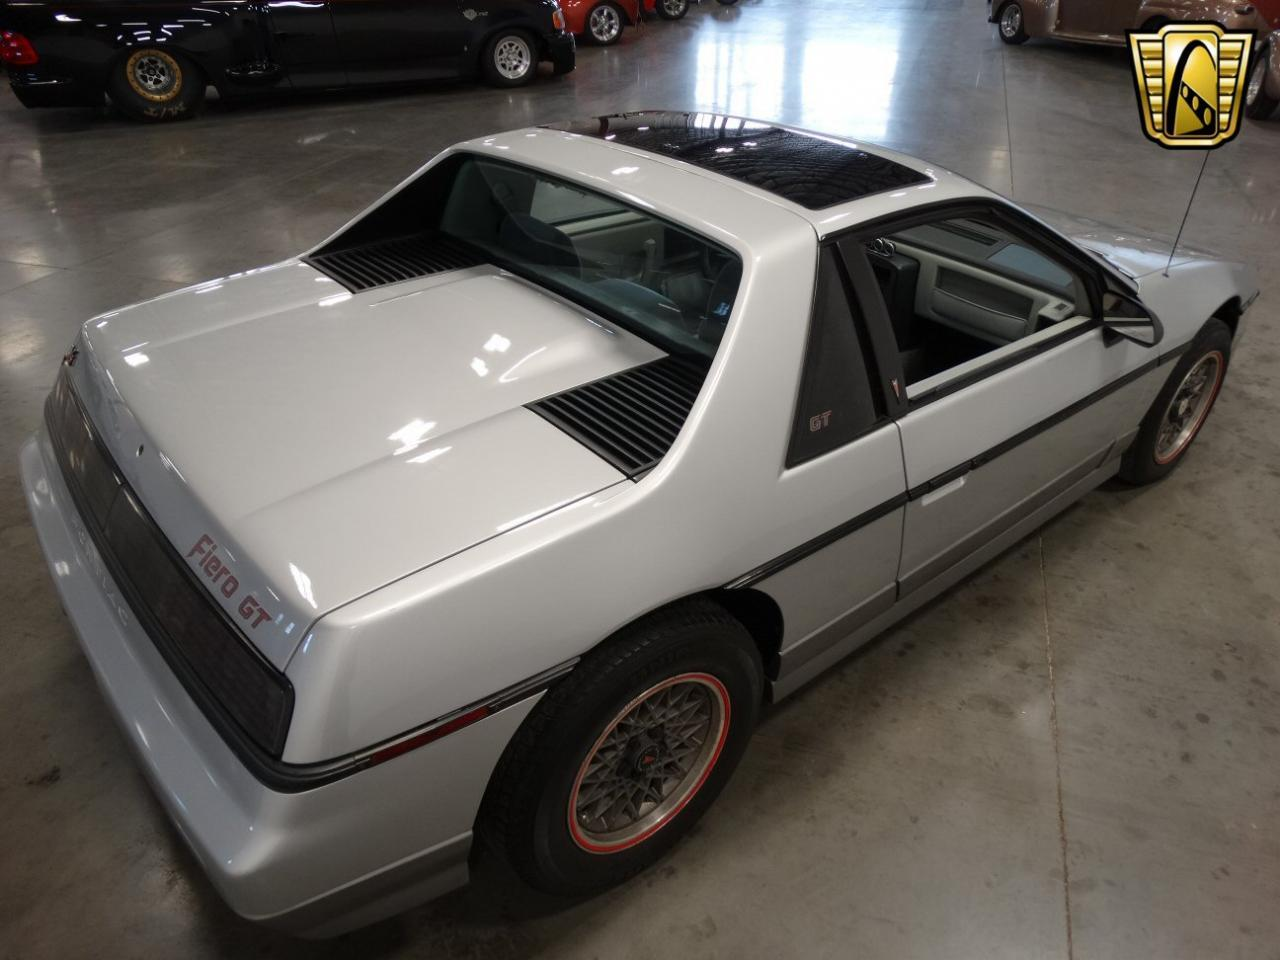 Large Picture of '85 Pontiac Fiero located in Tennessee - $6,995.00 - KDWK